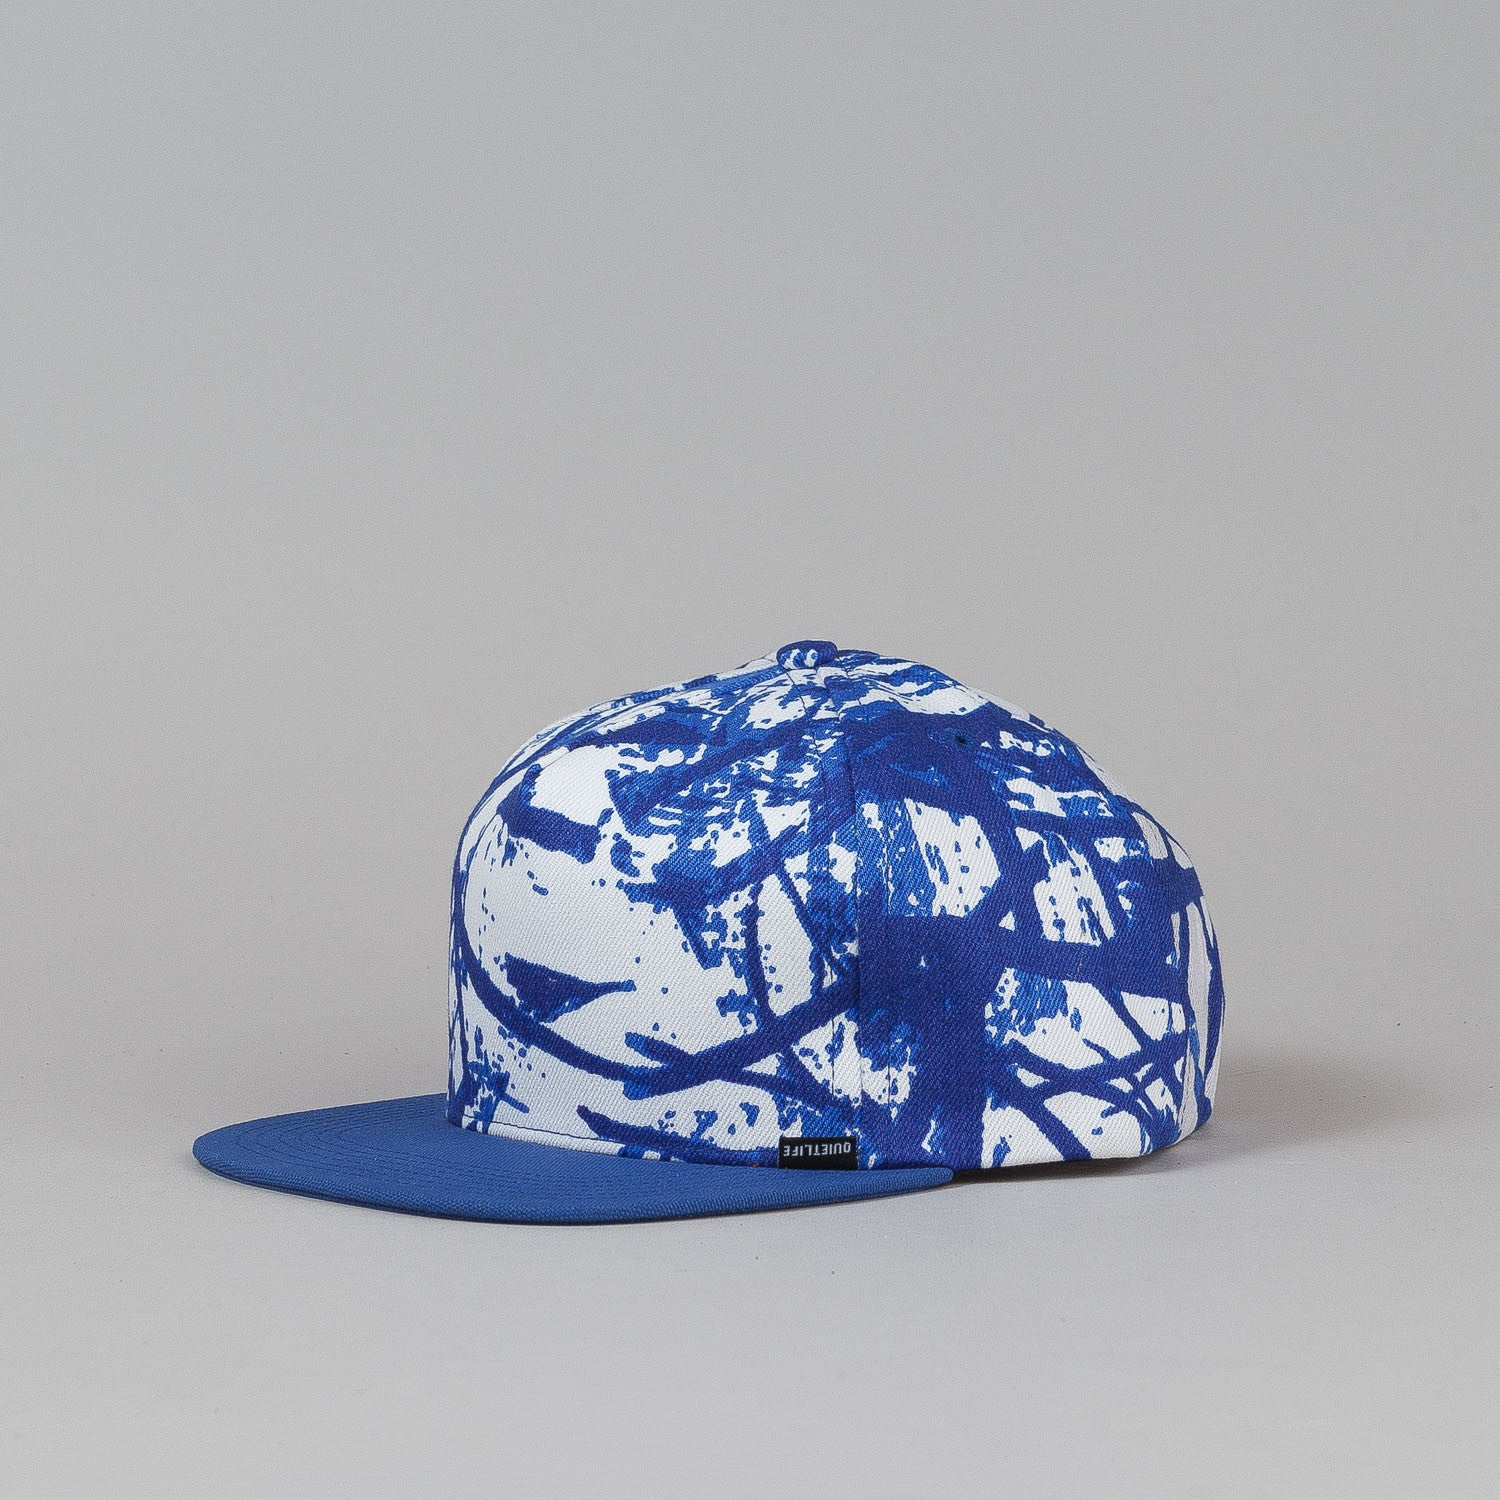 The Quiet Life No Label Snapback Cap Swirl / Blue Bill